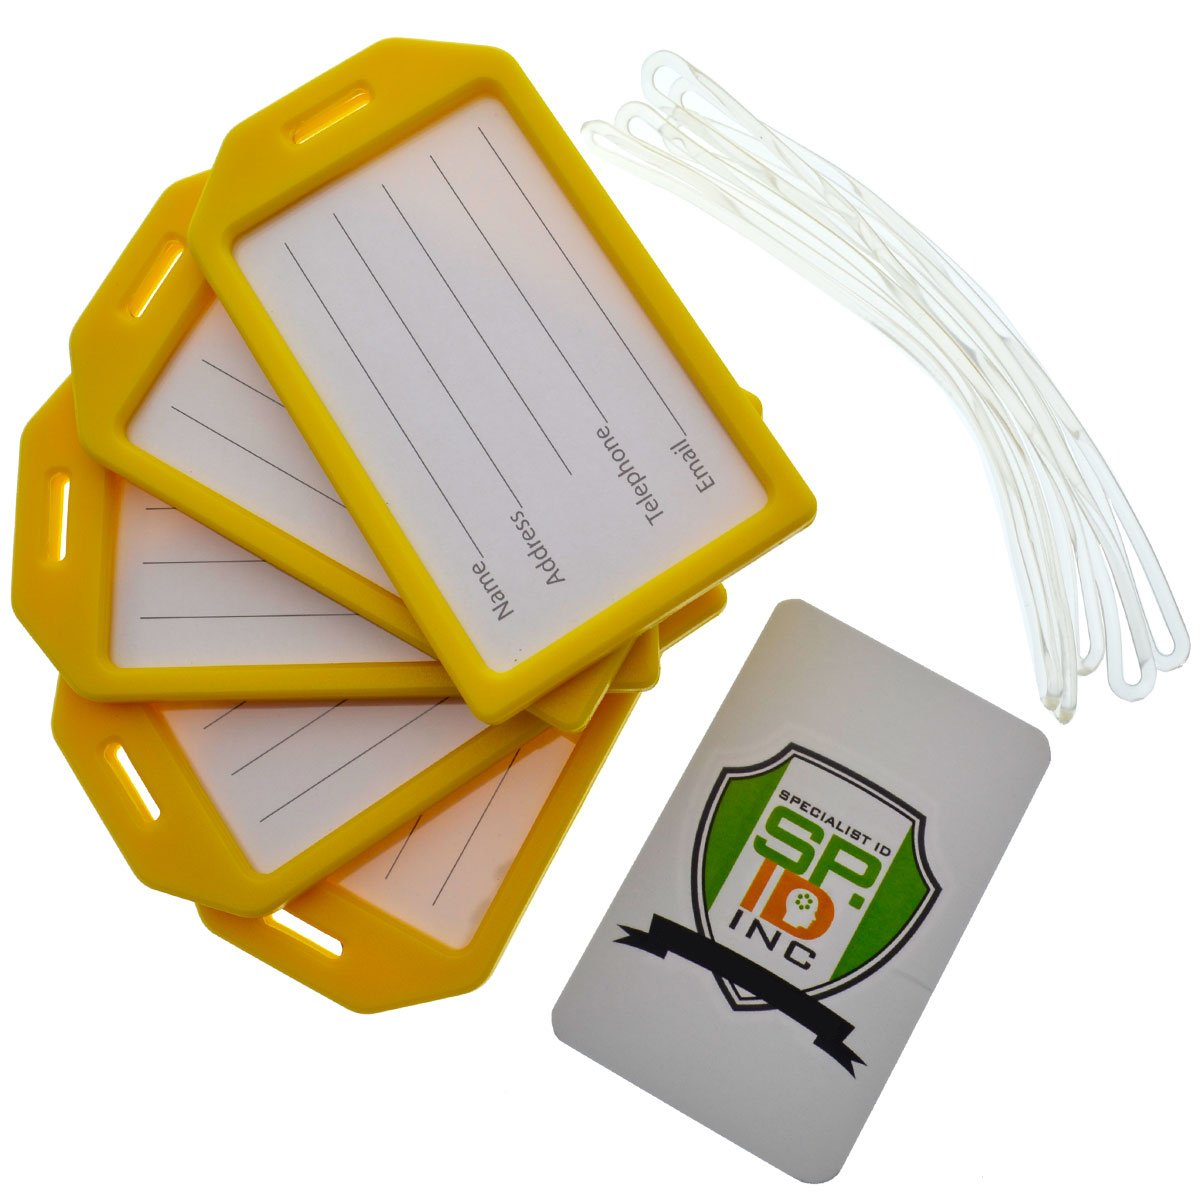 5 Pack of Premium Rigid Airline Luggage Tag Holders with 6'' Worm Loops by Specialist ID (Yellow) by Specialist ID (Image #1)